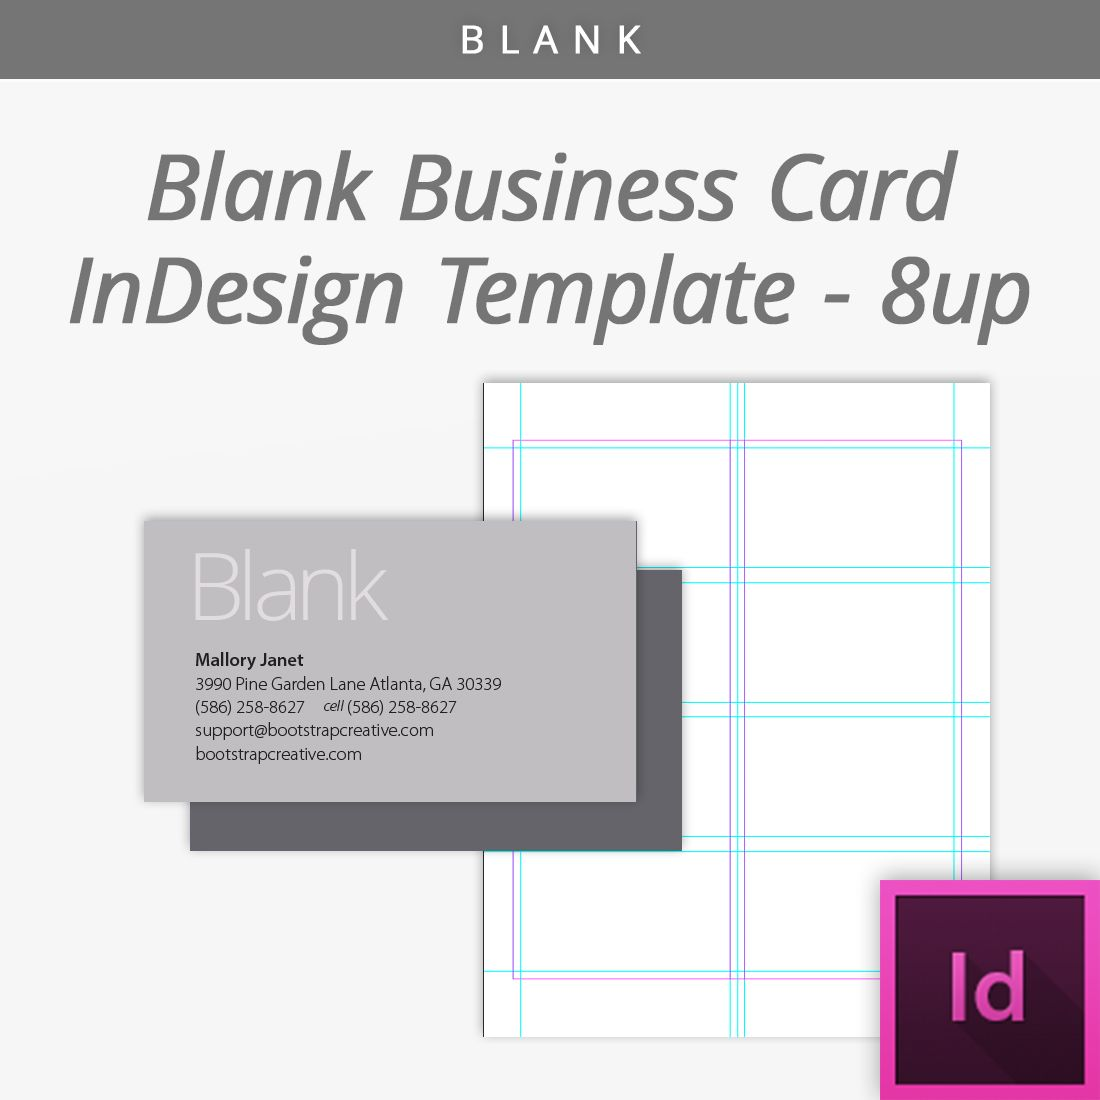 Blank indesign business card template 8 up free download blank indesign business card template 8 up free download designtemplate accmission Gallery